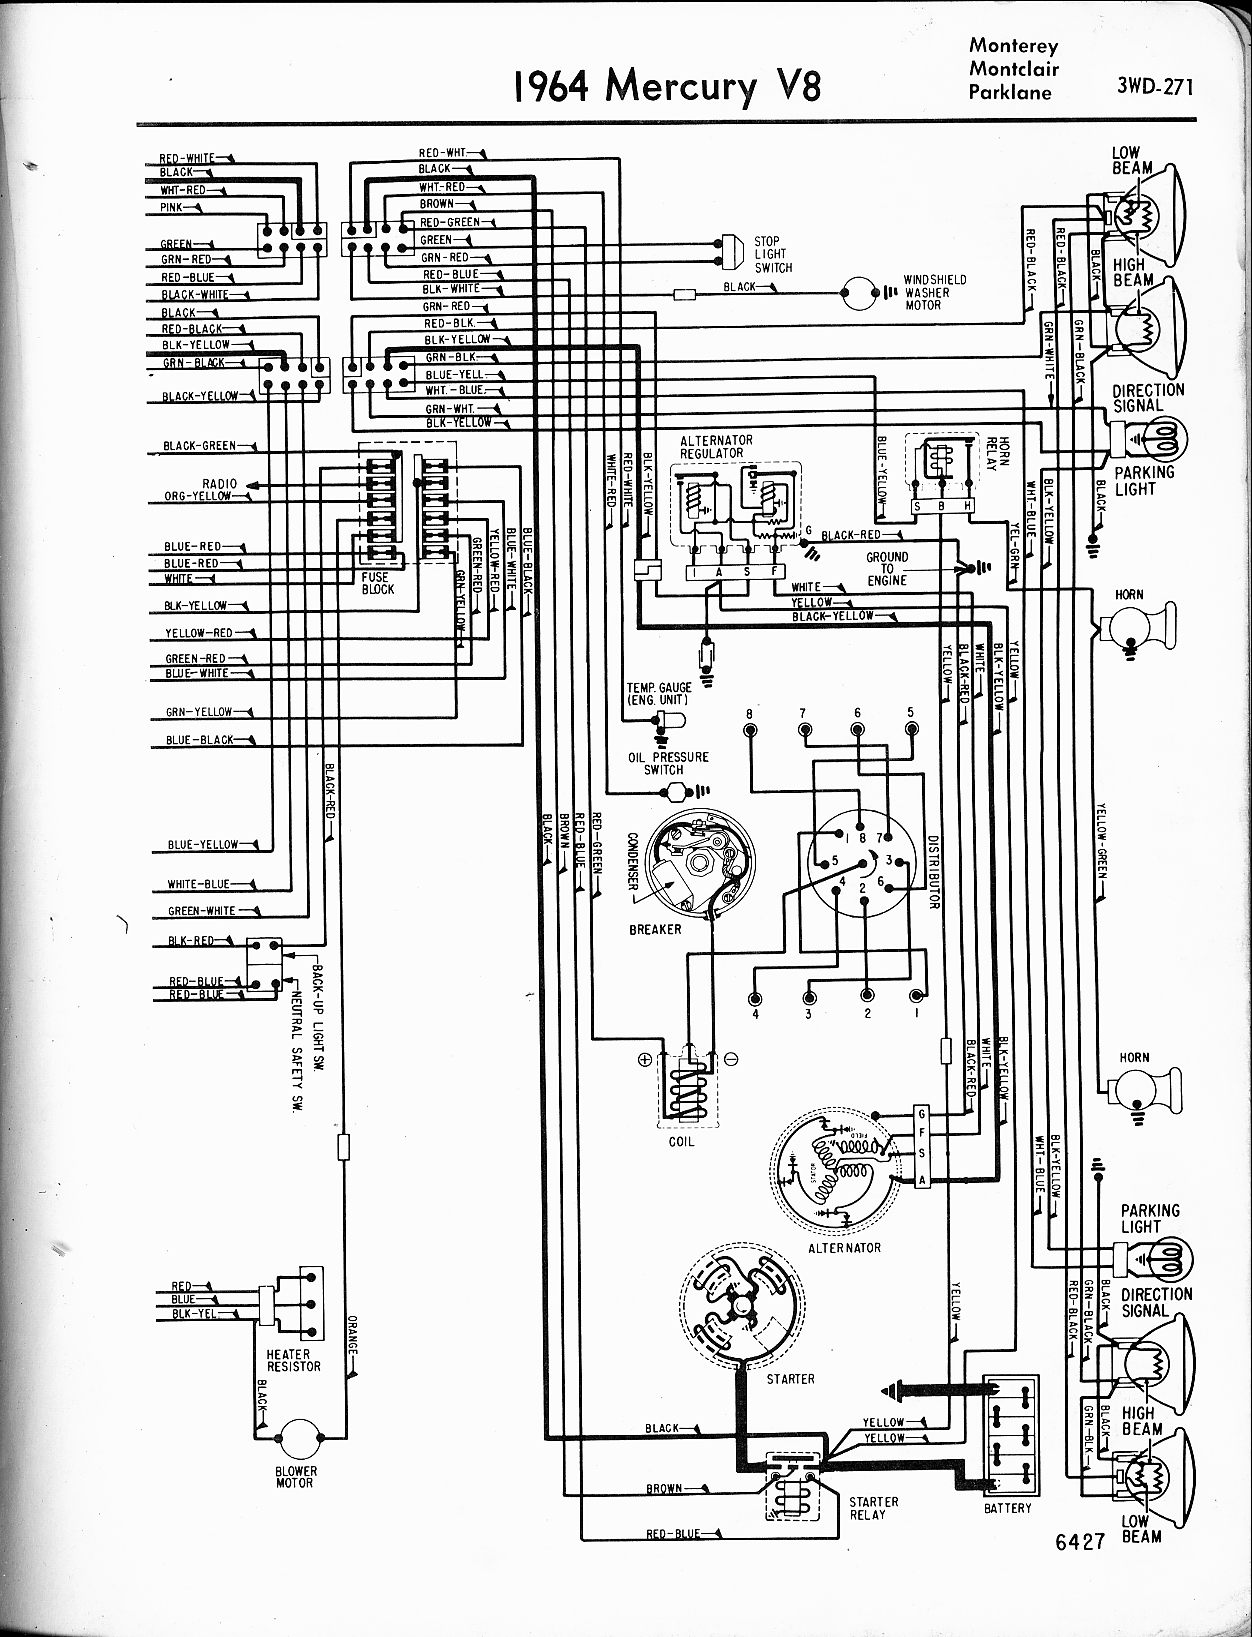 MWire5765 271 mercury wiring diagrams the old car manual project 1963 ford wiring diagram at crackthecode.co